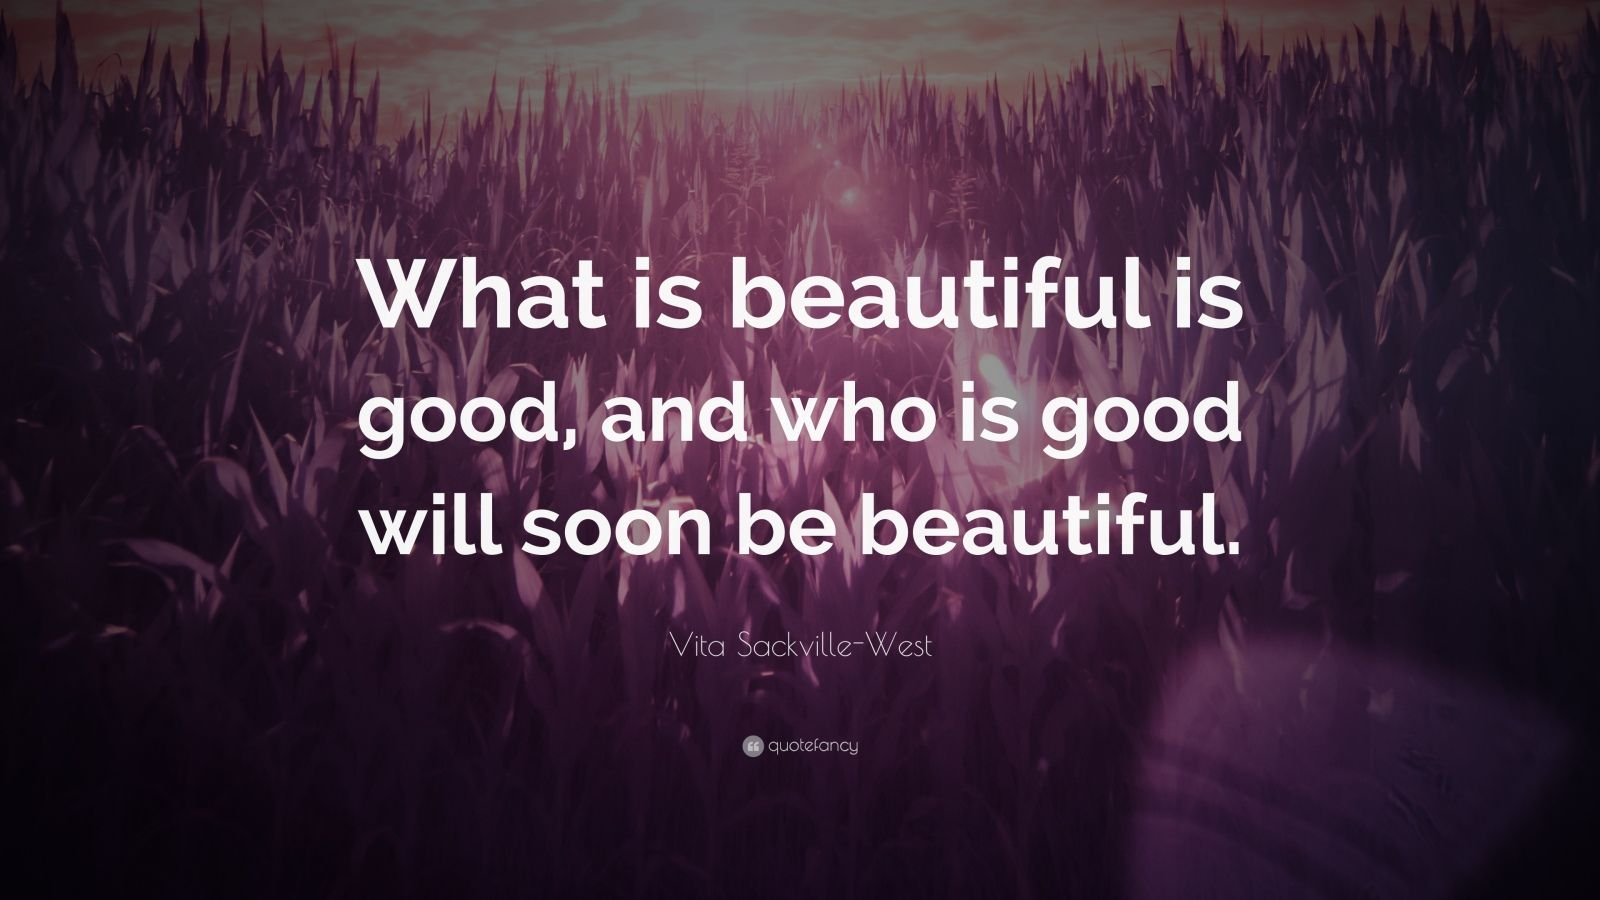 """Vita Sackville-West Quote: """"What is beautiful is good, and who is good will soon be beautiful."""""""